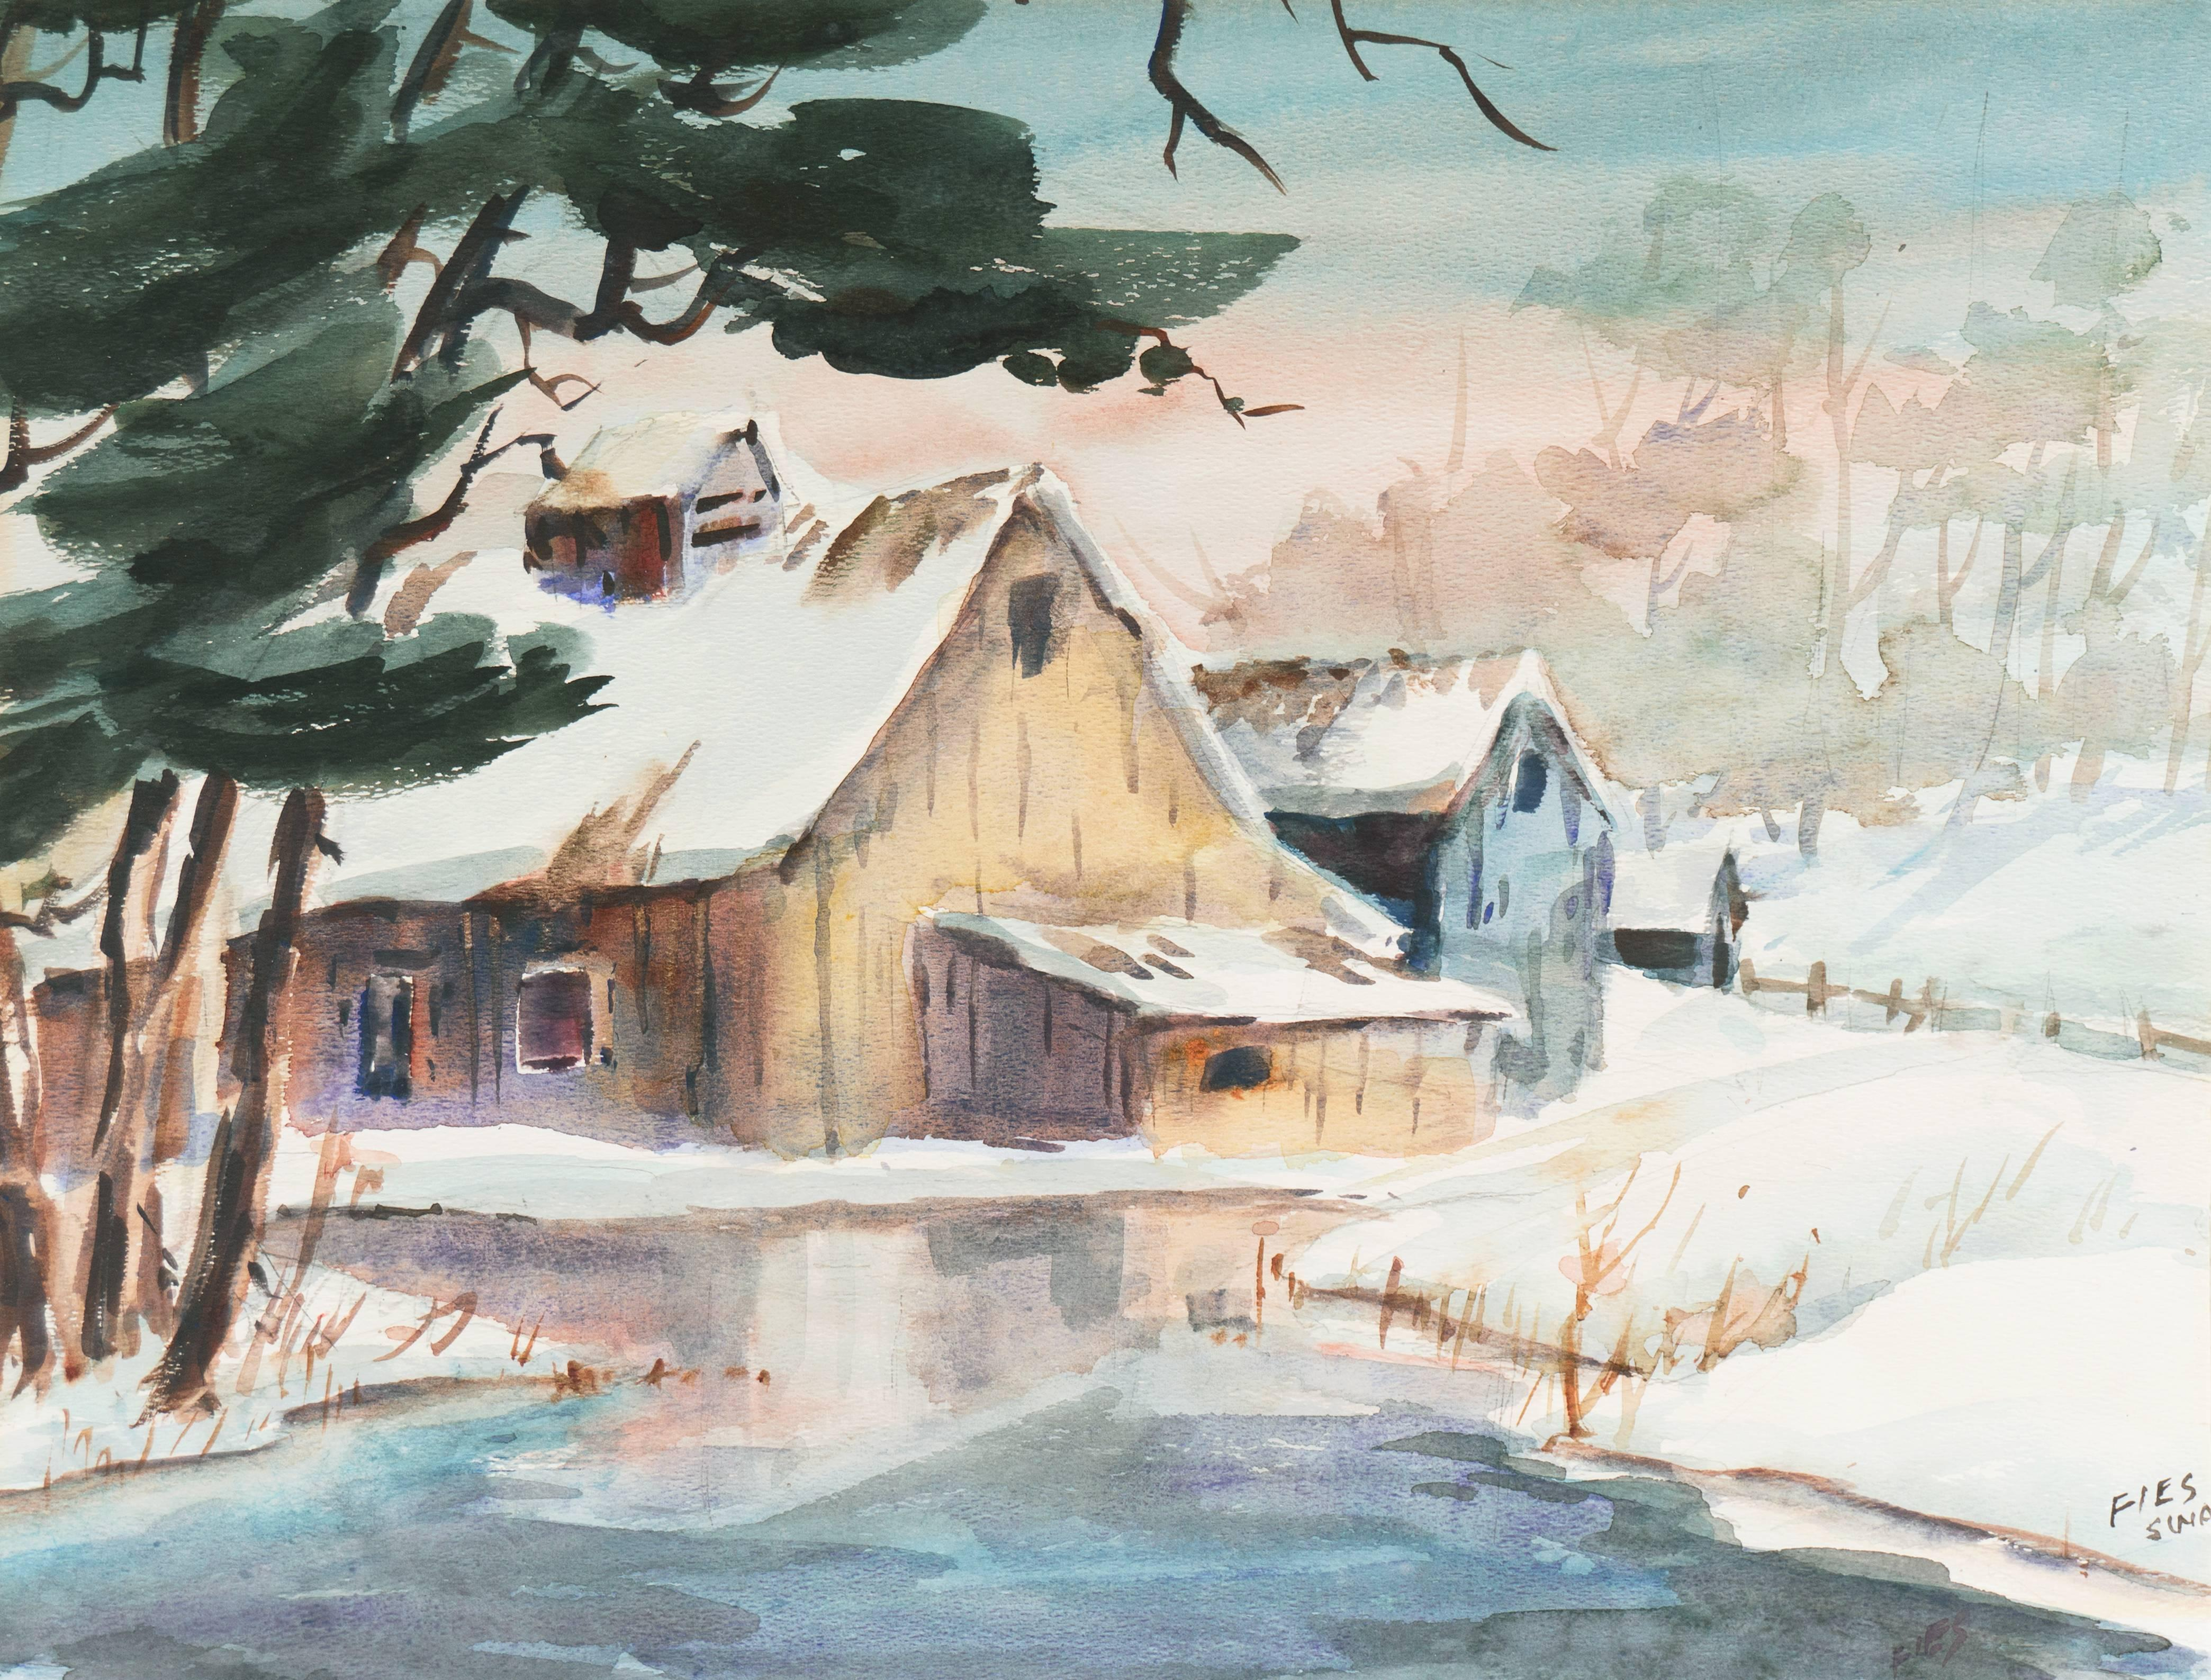 'A Snow Covered Barn', Society of Watercolor Artists, Rural Winter, California